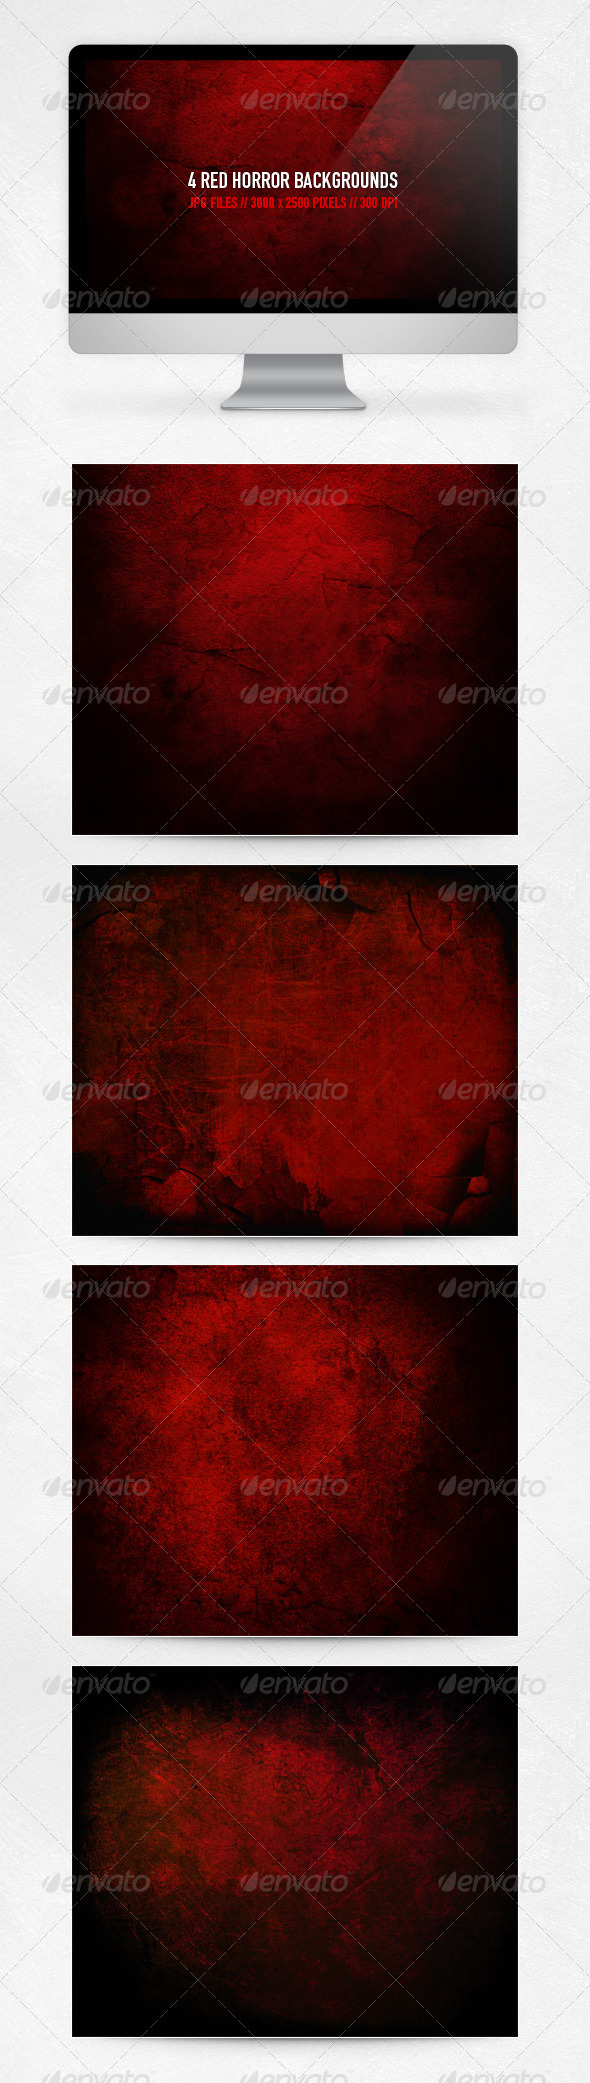 Graphic River Red Horror Backgrounds Graphics -  Backgrounds 935542